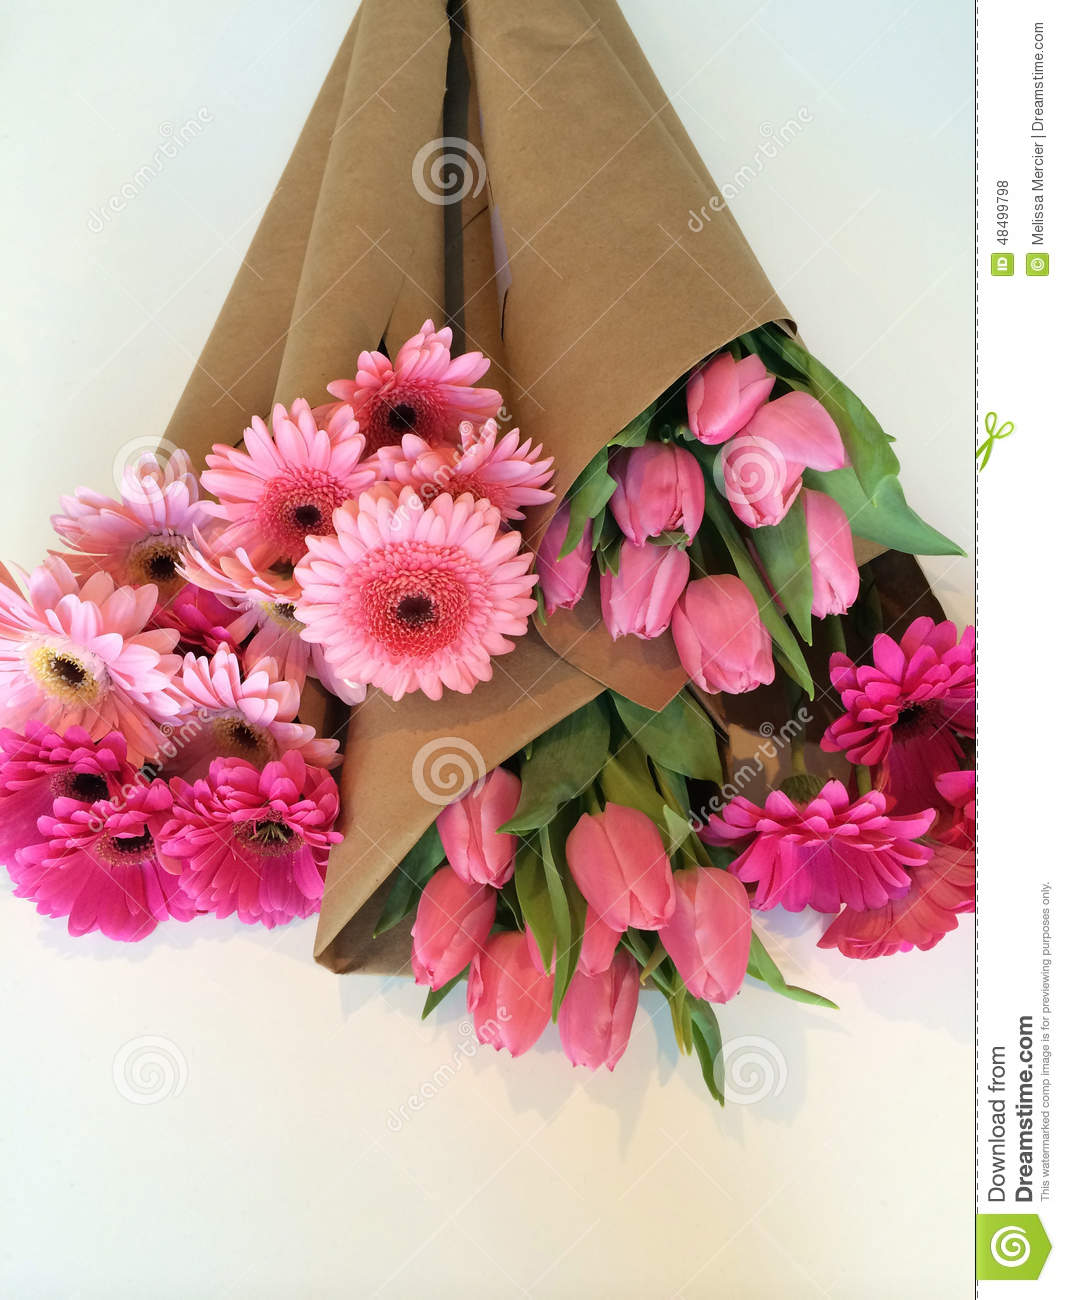 Wrapped Flower Bouquets Stock Photo Image Of Colorful 48499798